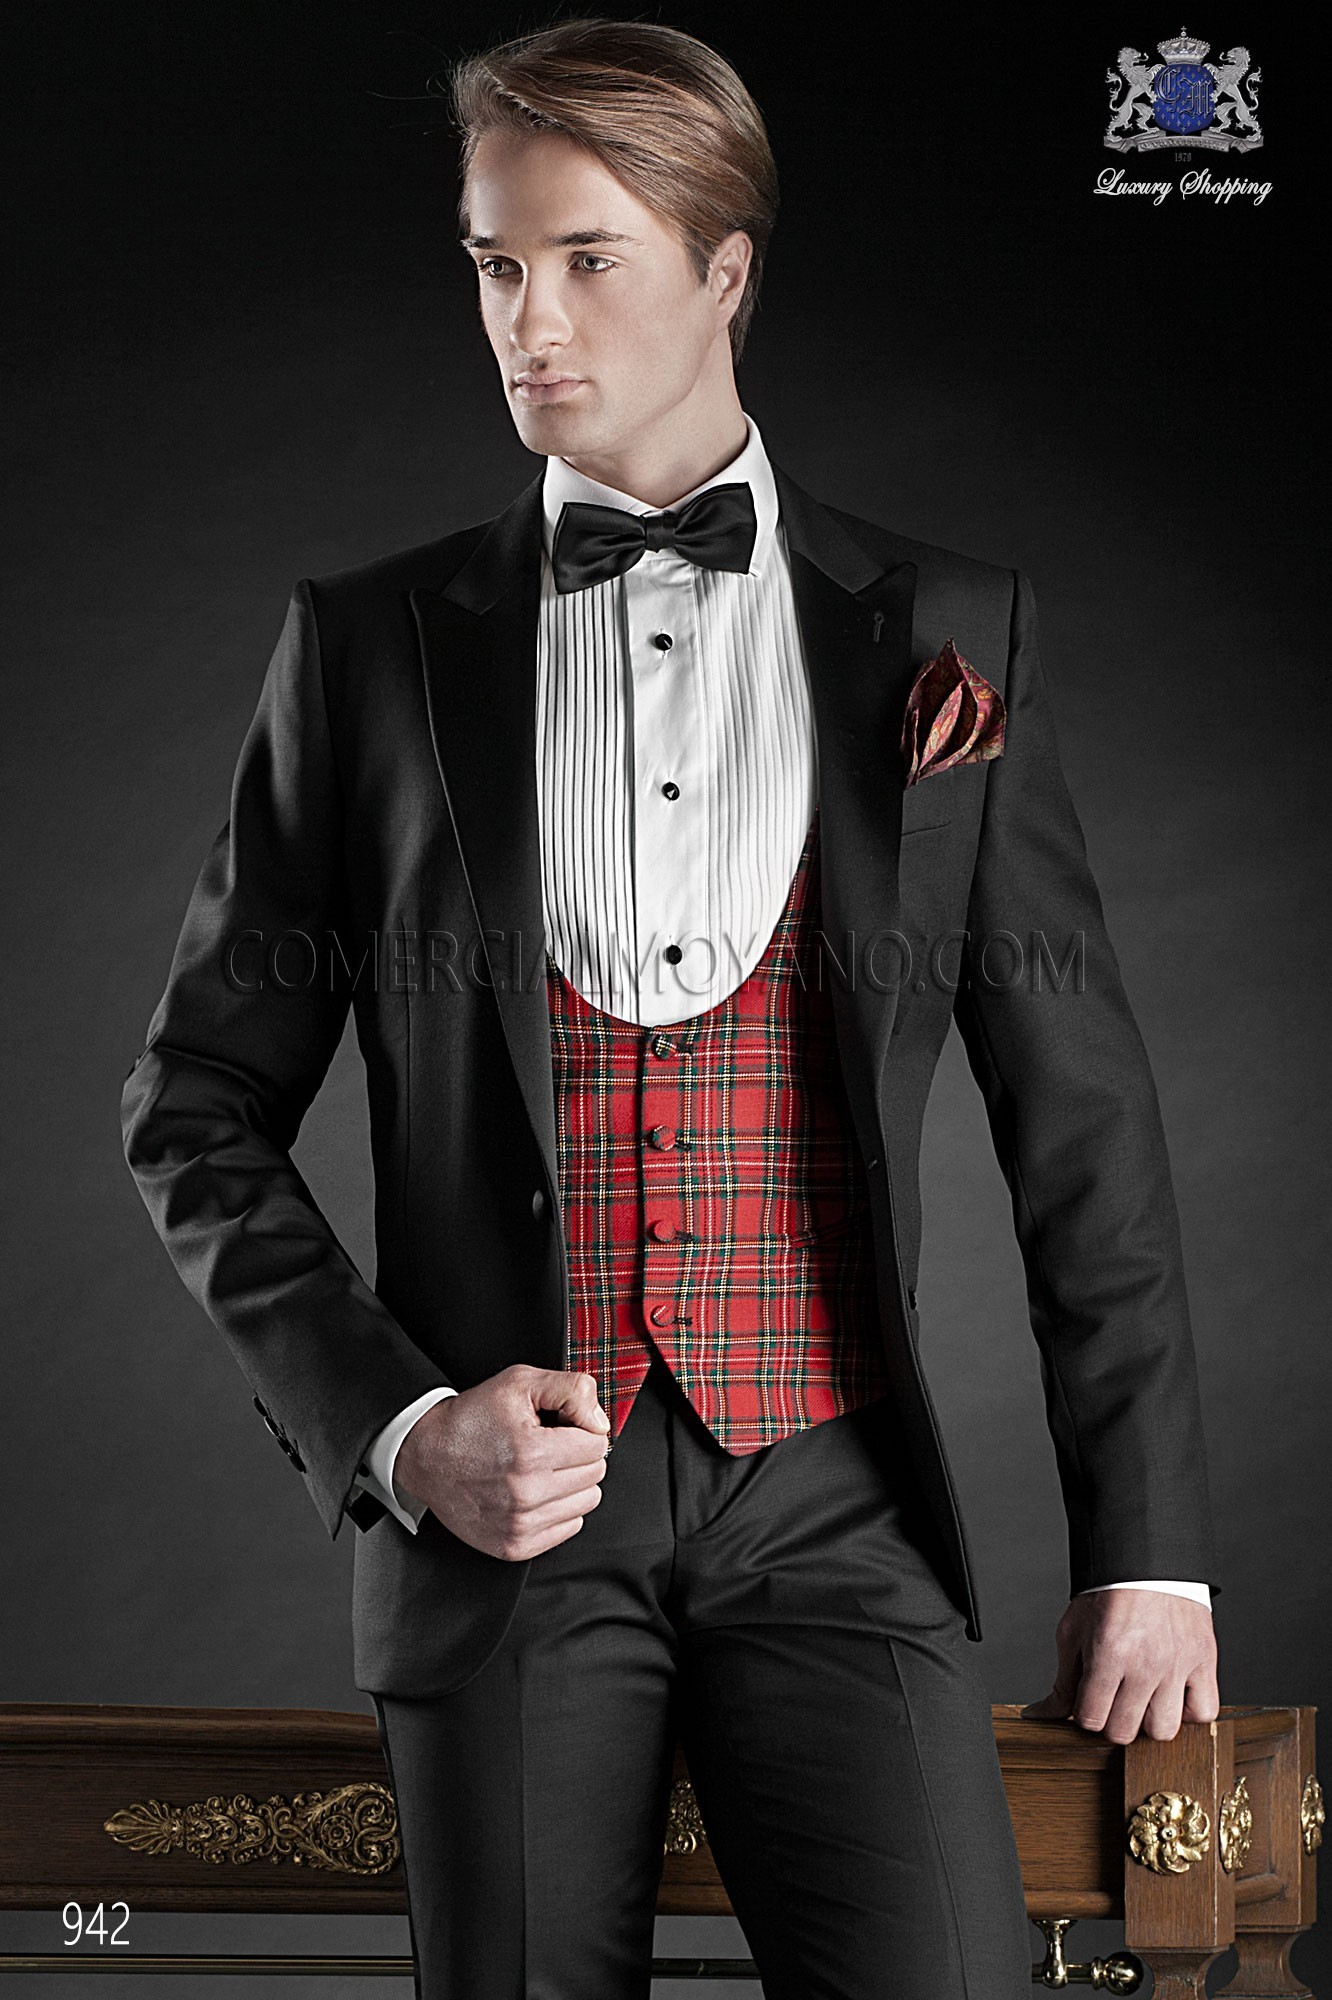 Black Tie black men wedding suit model 942 Ottavio Nuccio Gala